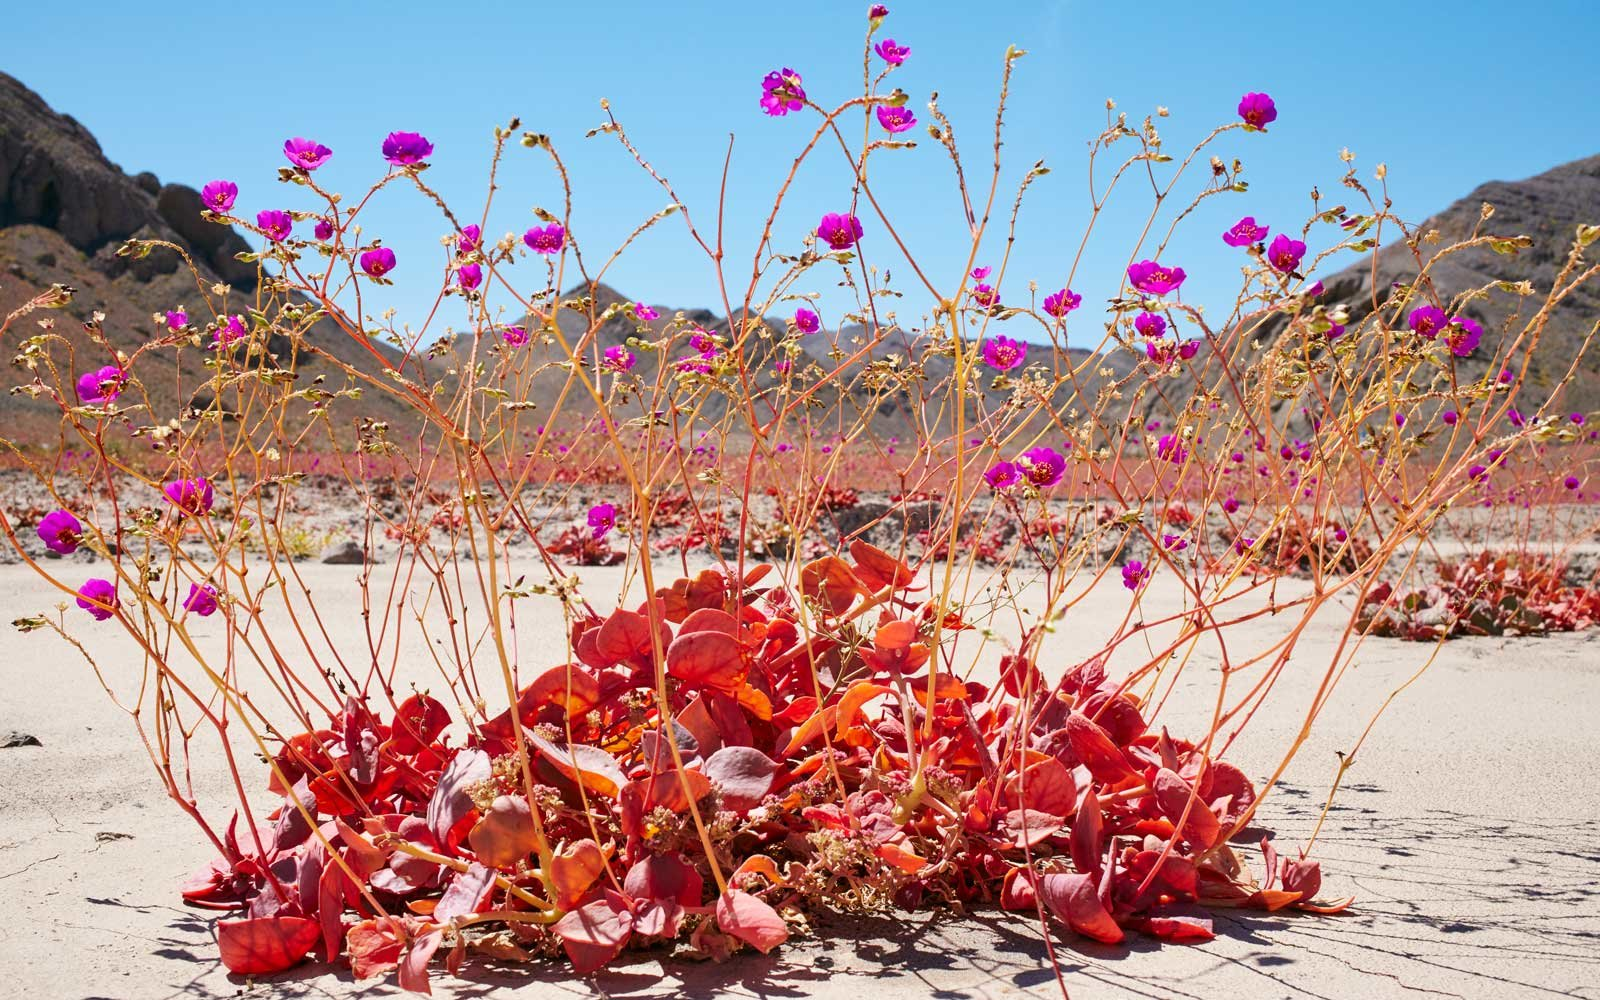 Rare Blooming of Desert Flowers in Chile